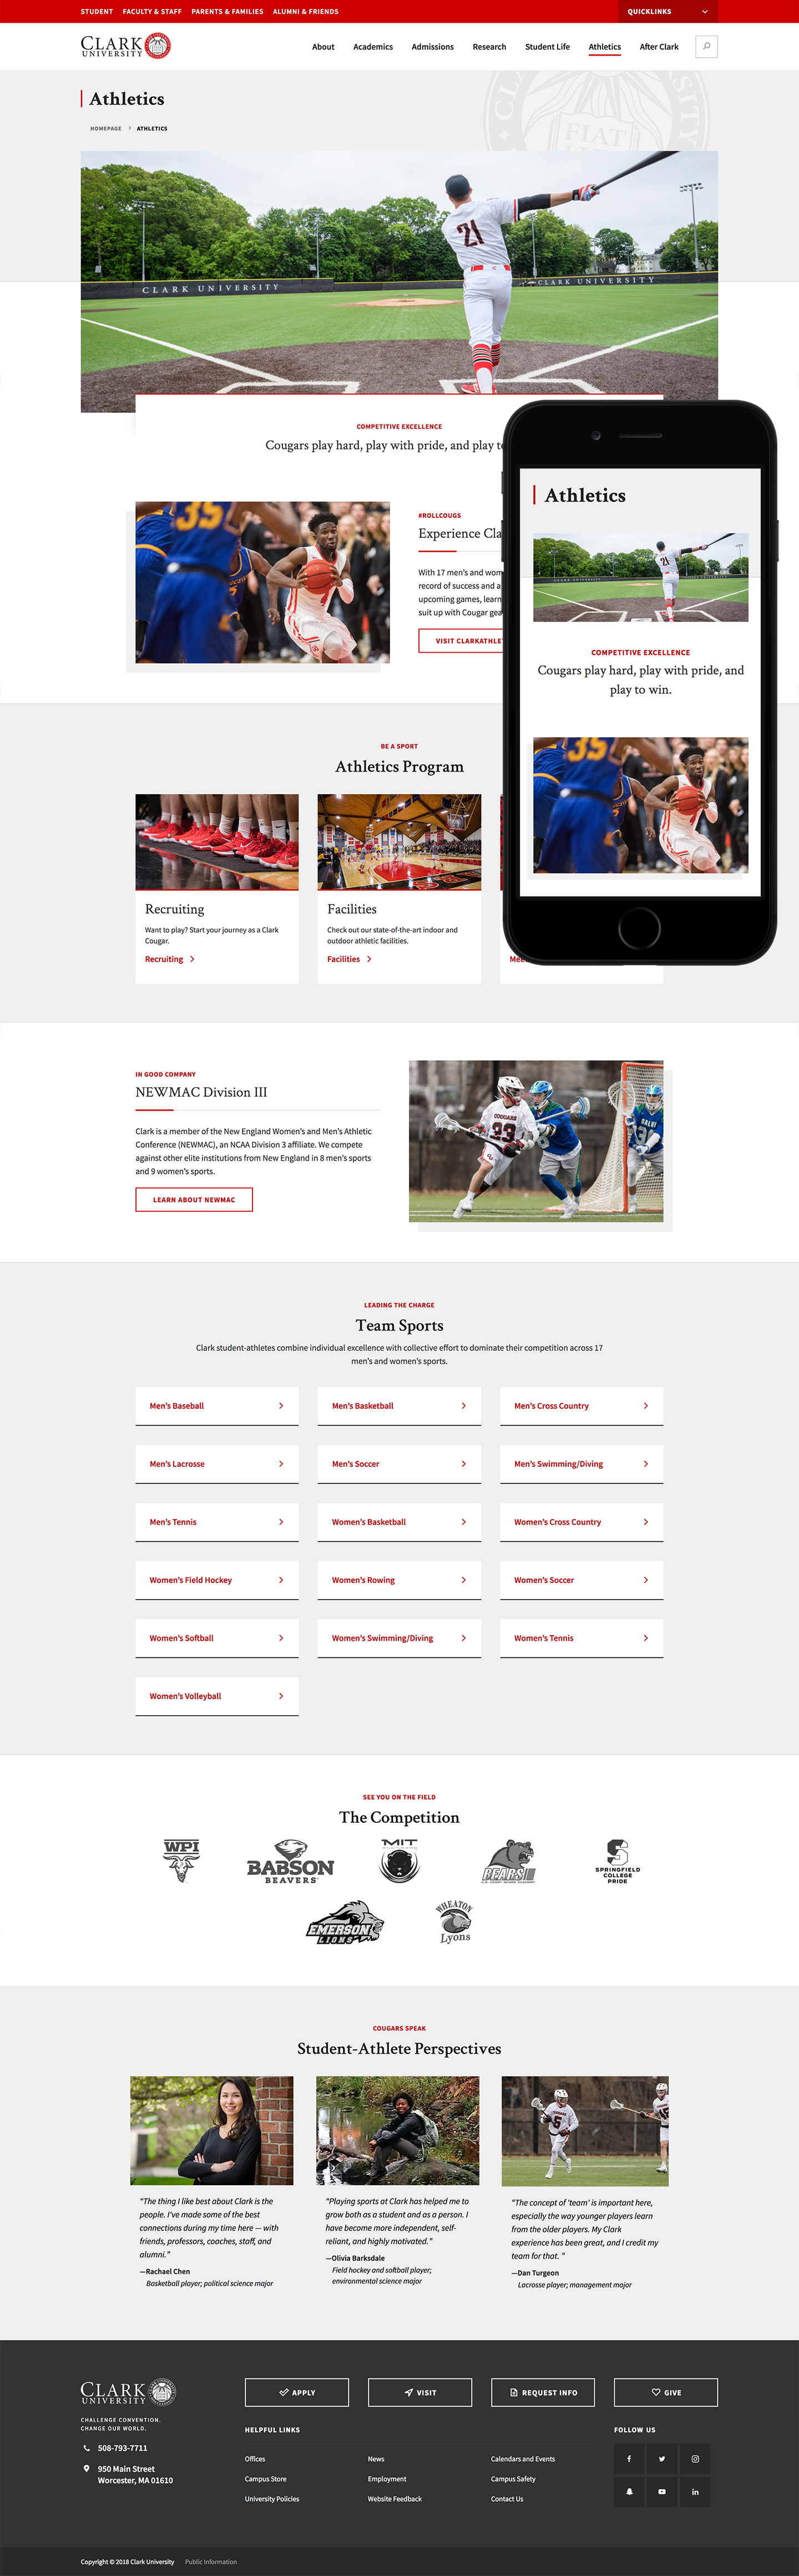 Clark University full athletics page on desktop and mobile